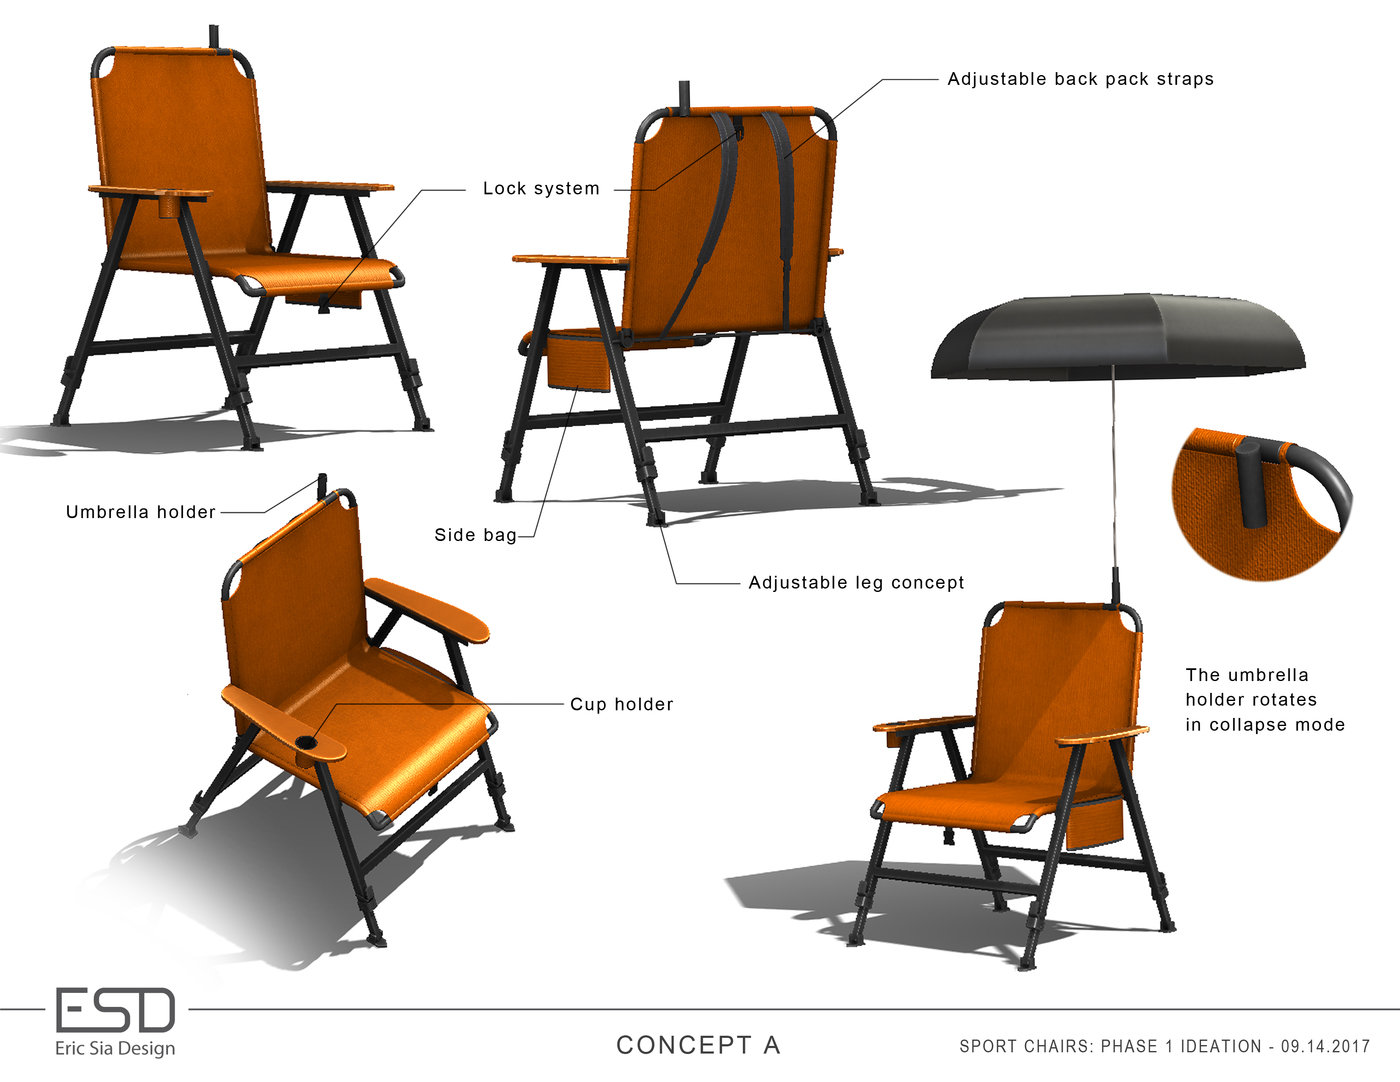 Phenomenal Folding Chairs Concepts By Eric Sia At Coroflot Com Ncnpc Chair Design For Home Ncnpcorg